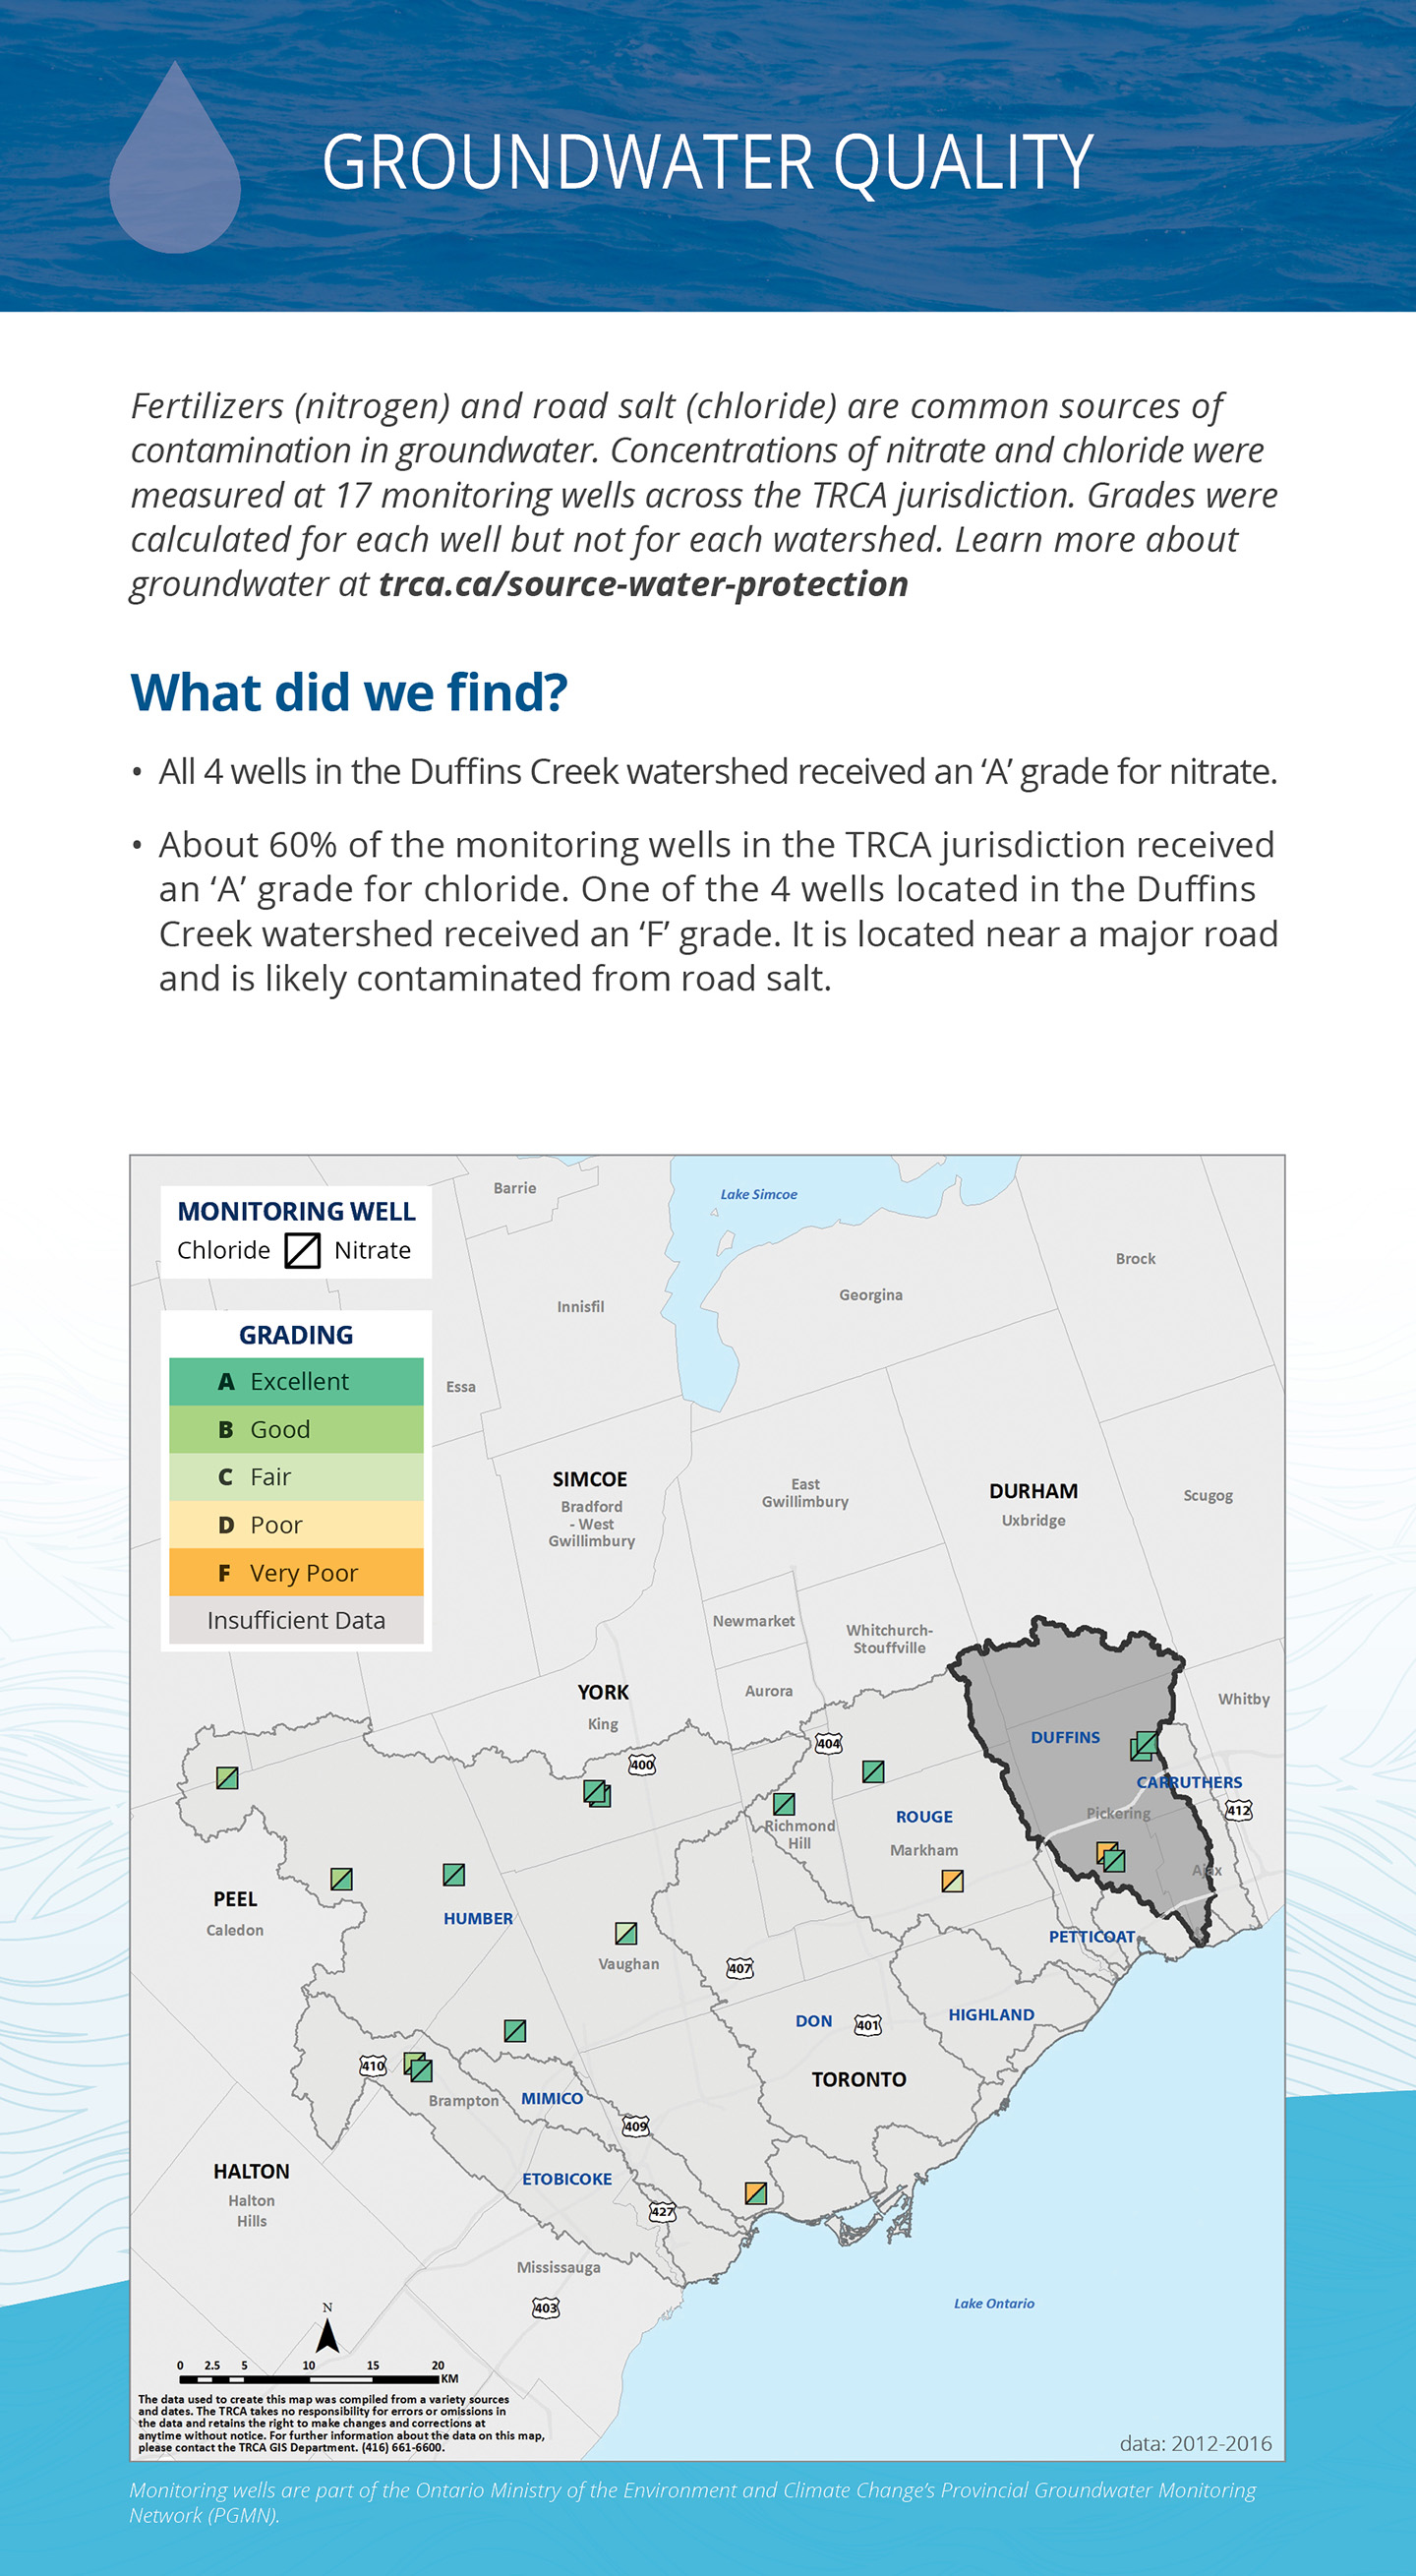 groundwater quality panel of Duffins Creek watershed report card